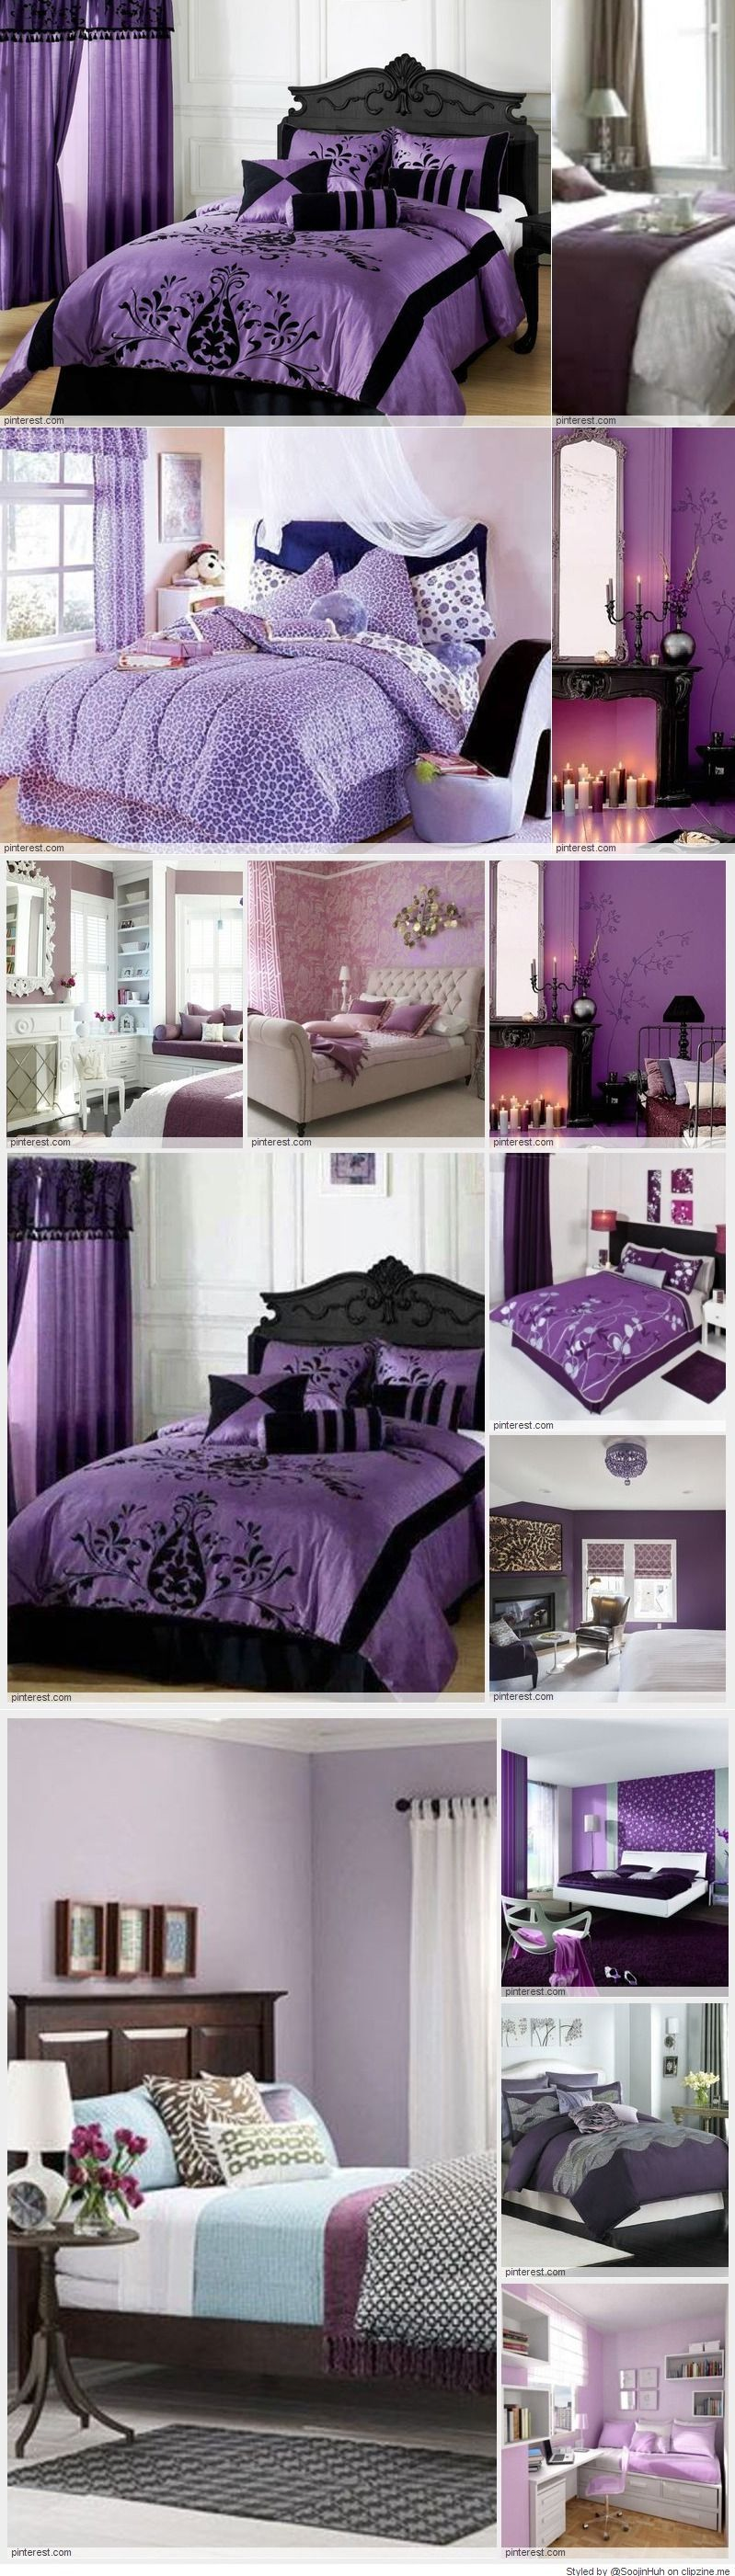 Purple Bedroom Decorating Ideas Clipzine Pages Pinterest Purple Bedrooms Bedrooms And